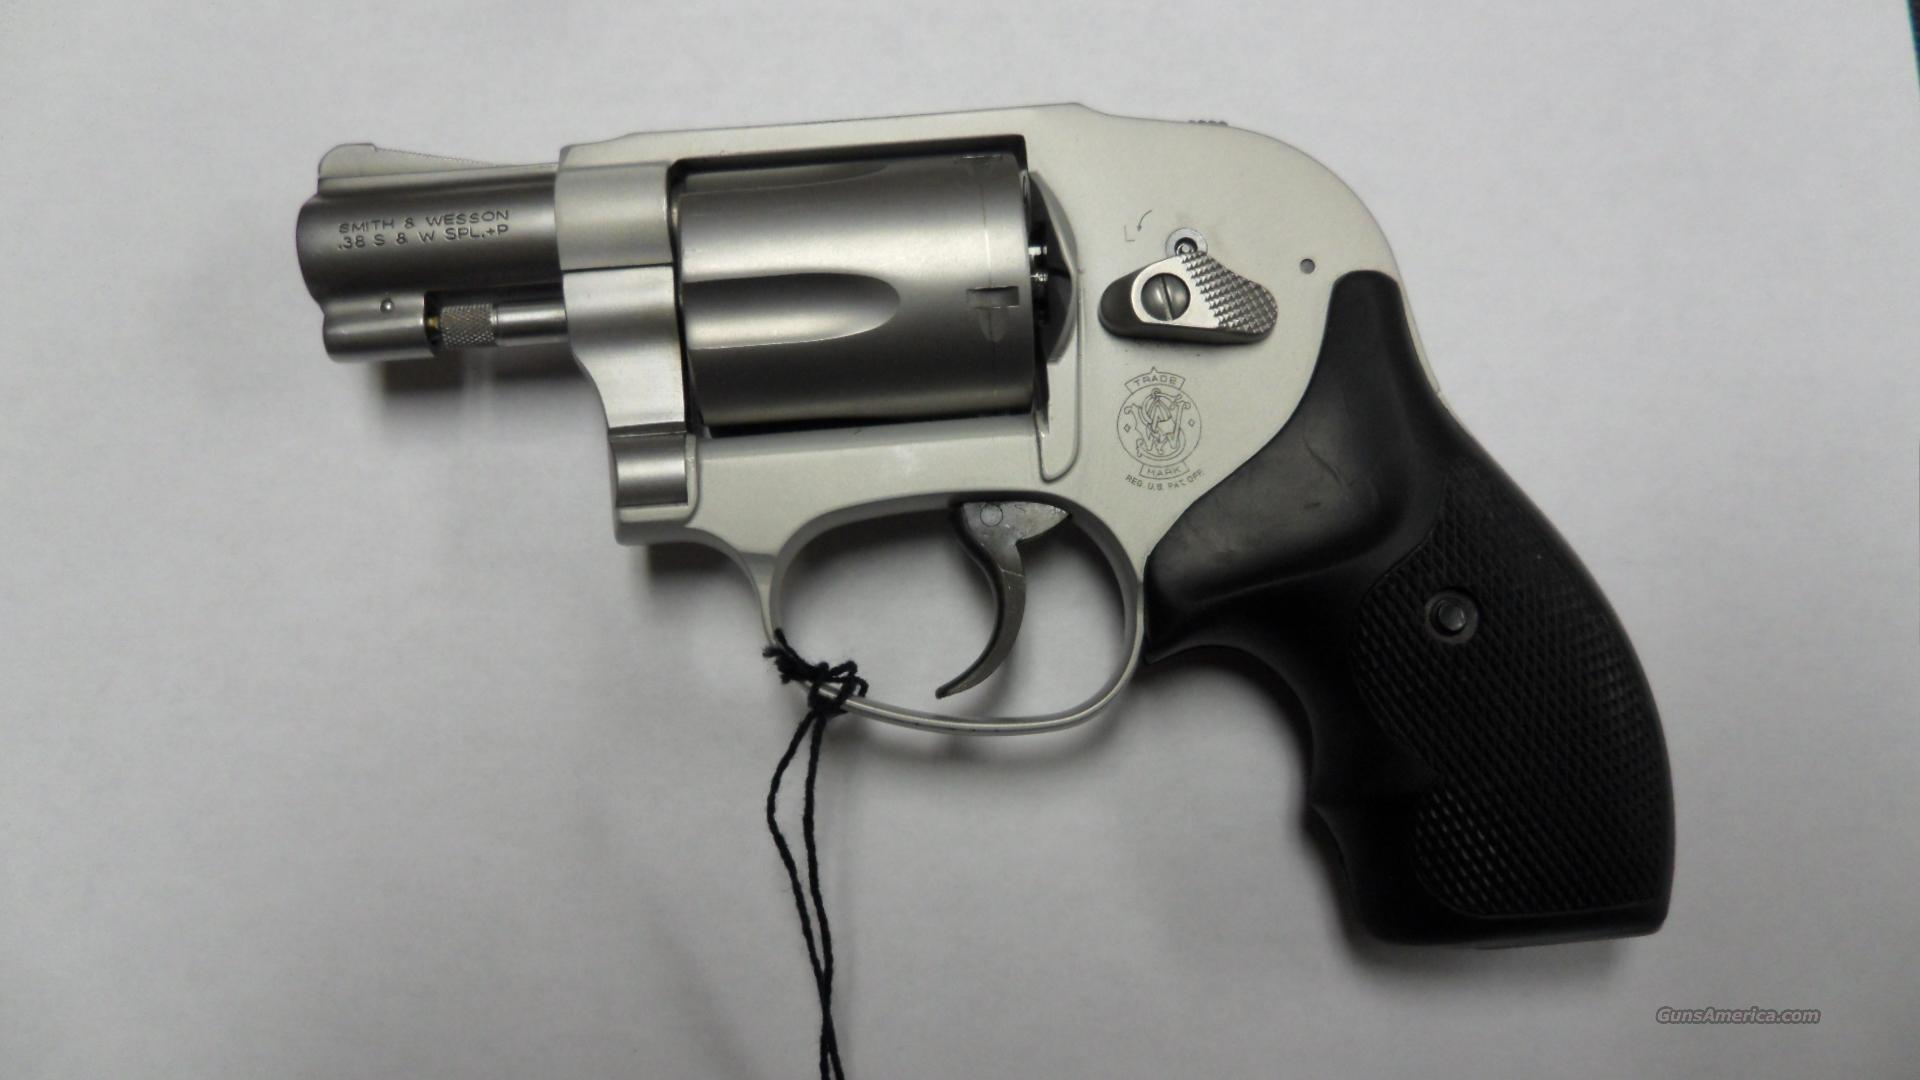 Smith & Wesson 638-3, 38 special  Guns > Pistols > Smith & Wesson Revolvers > Full Frame Revolver